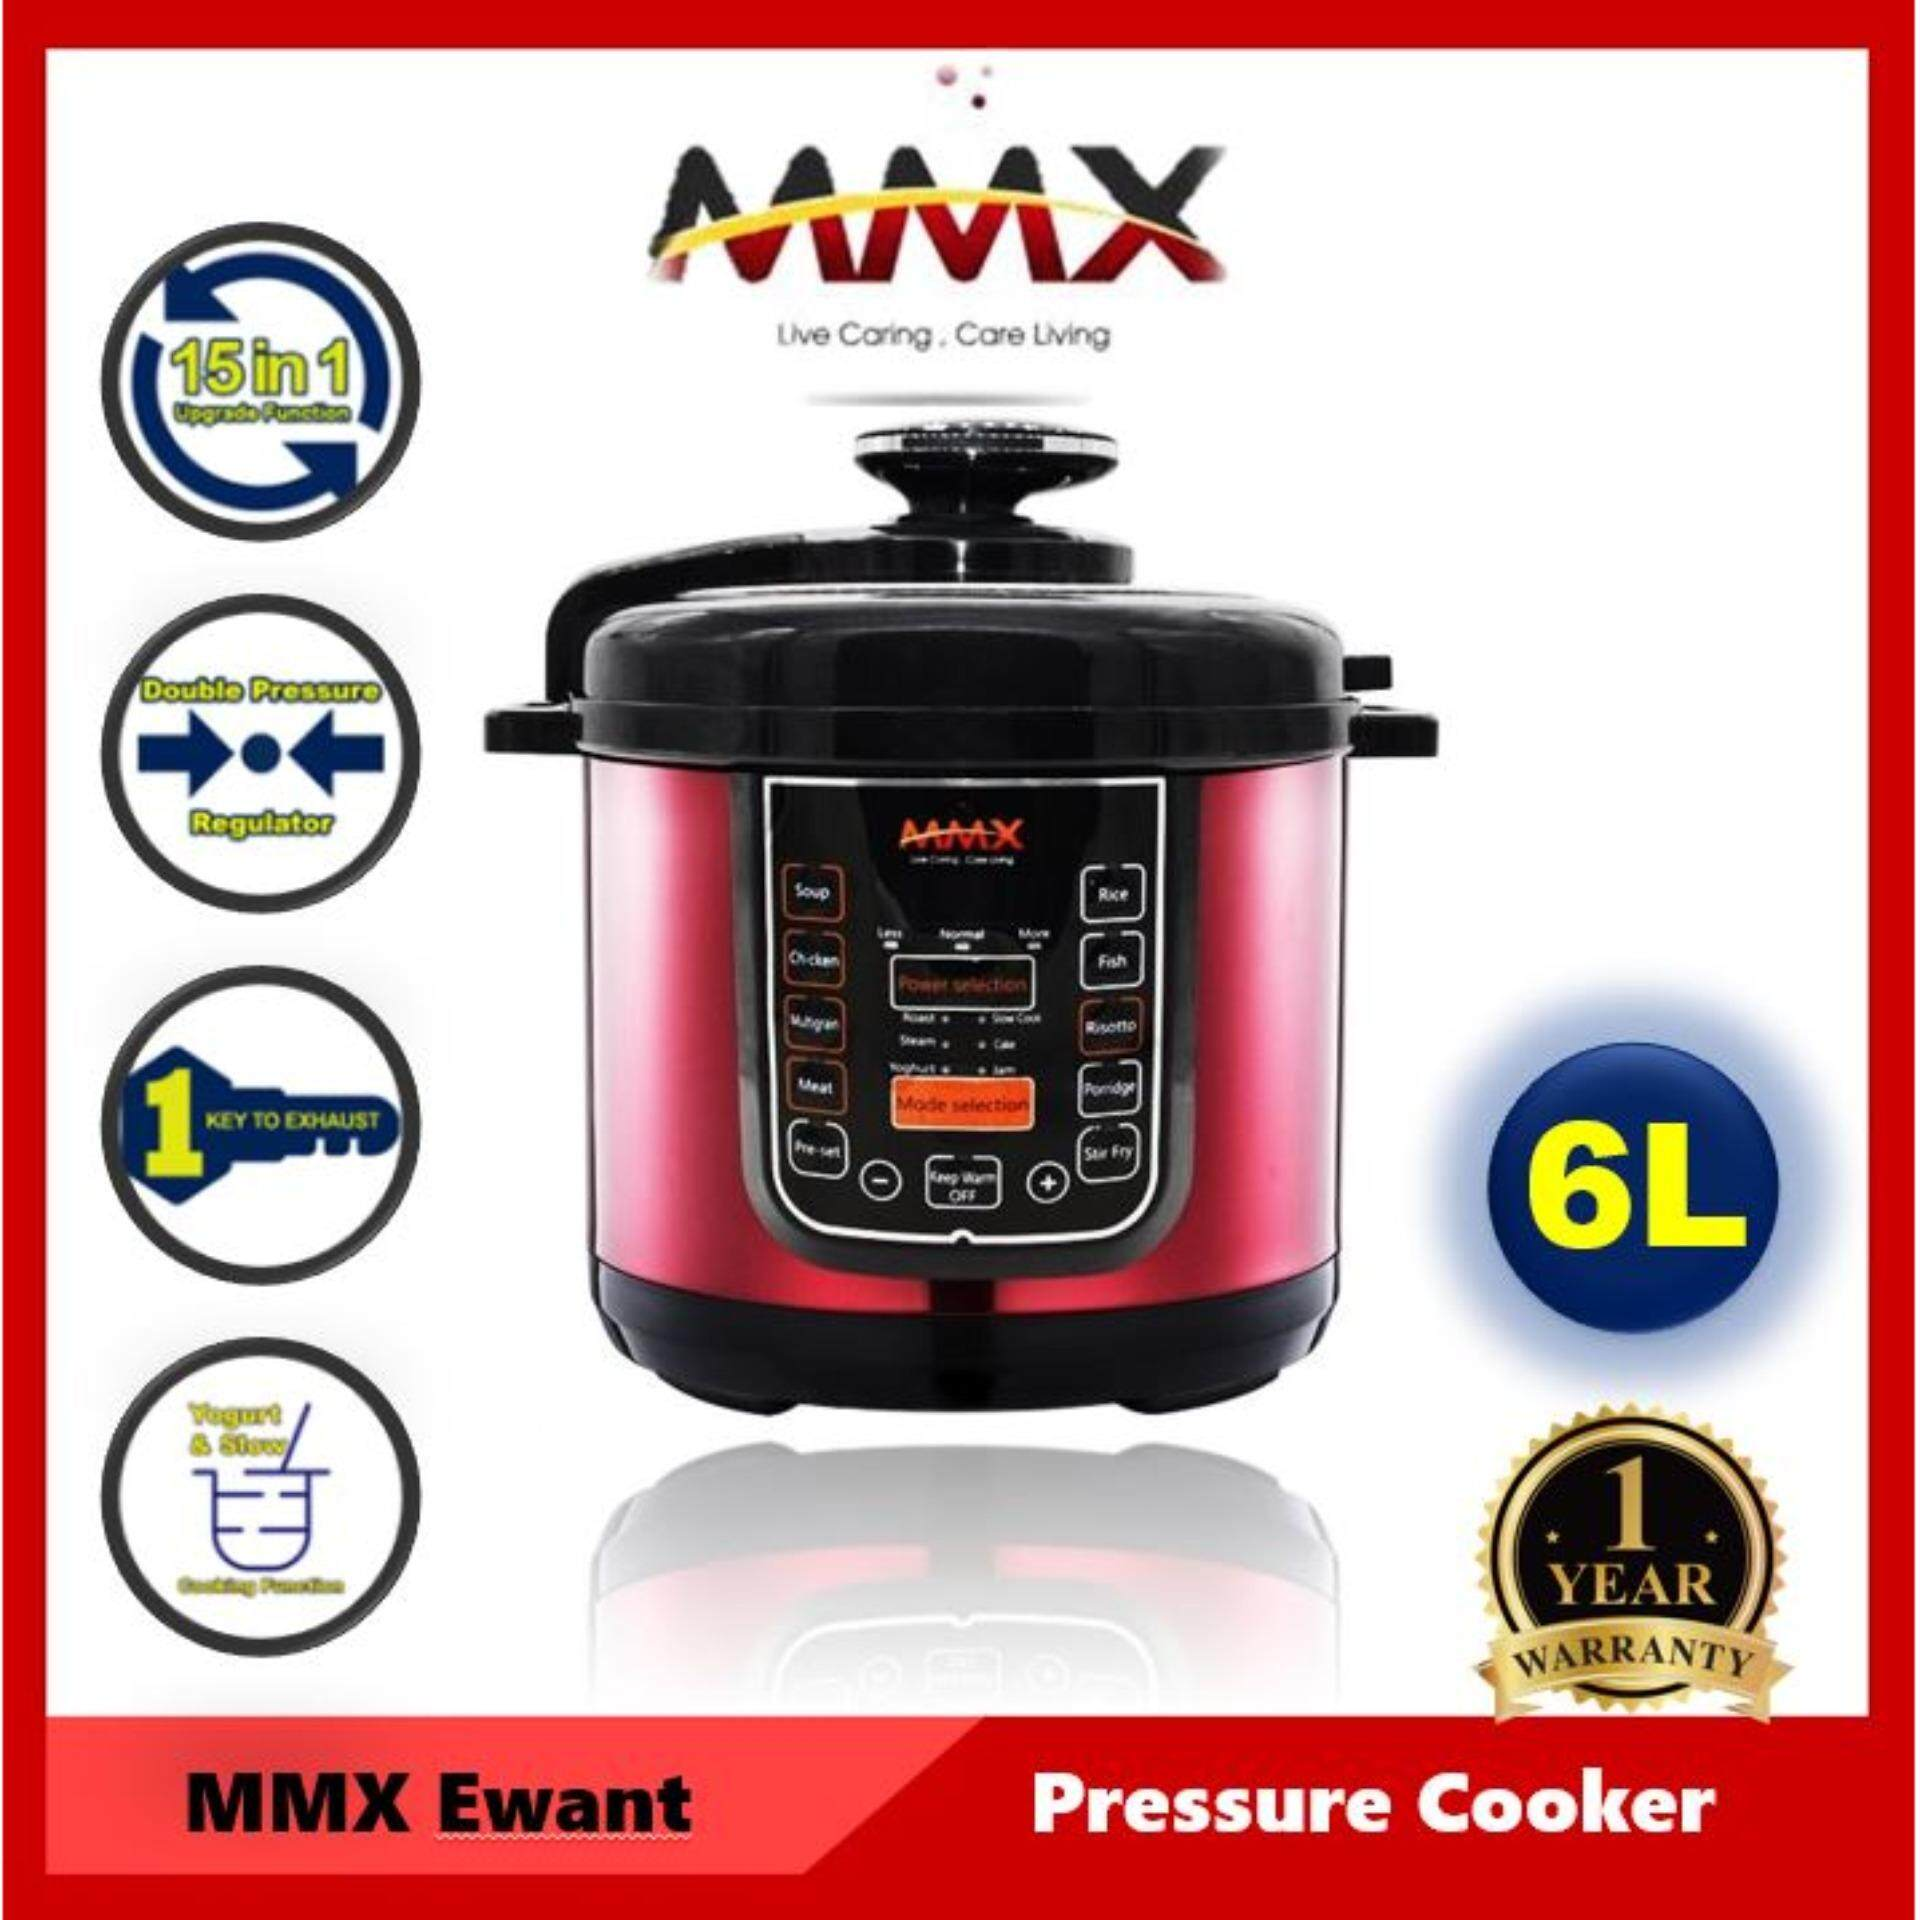 MMX Smart Electric Pressure Cooker 6L (15-in-1 Multi-Functional with Malaysia Plug)